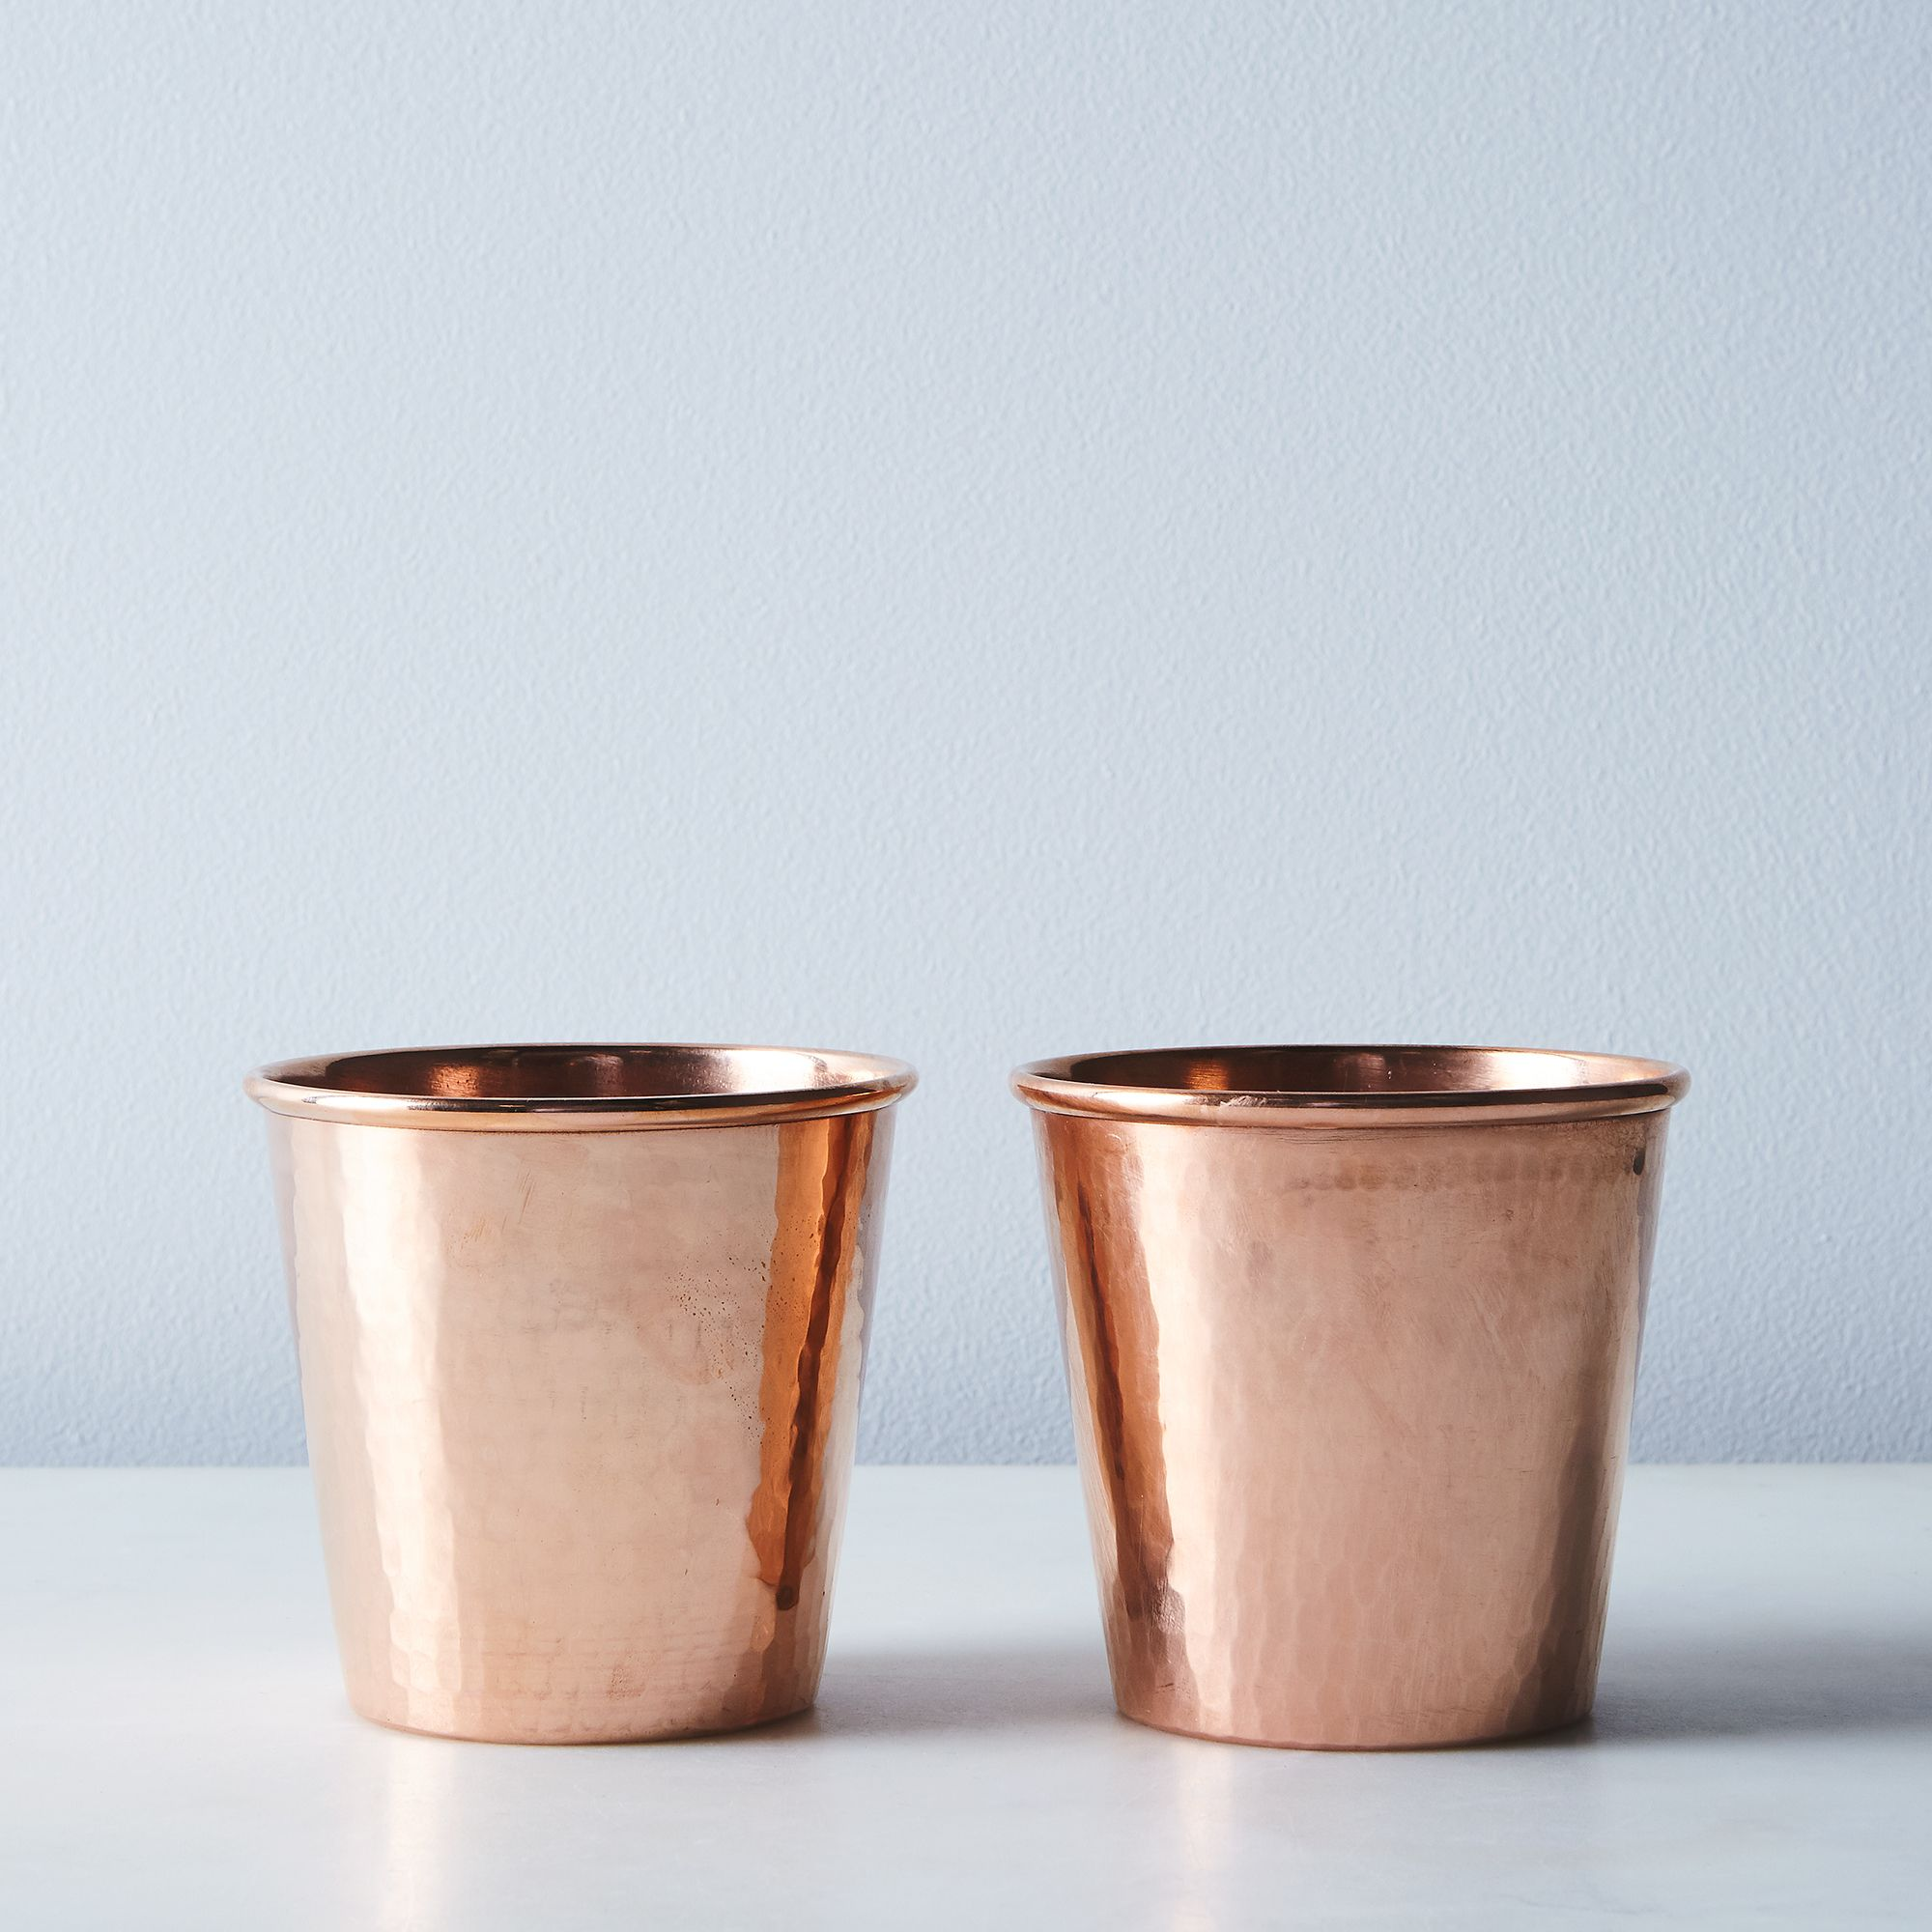 3484e1b9 b173 45a6 a672 5201312f7ef0  2016 1216 sertodo copper water cup set of 2 silo rocky luten 207